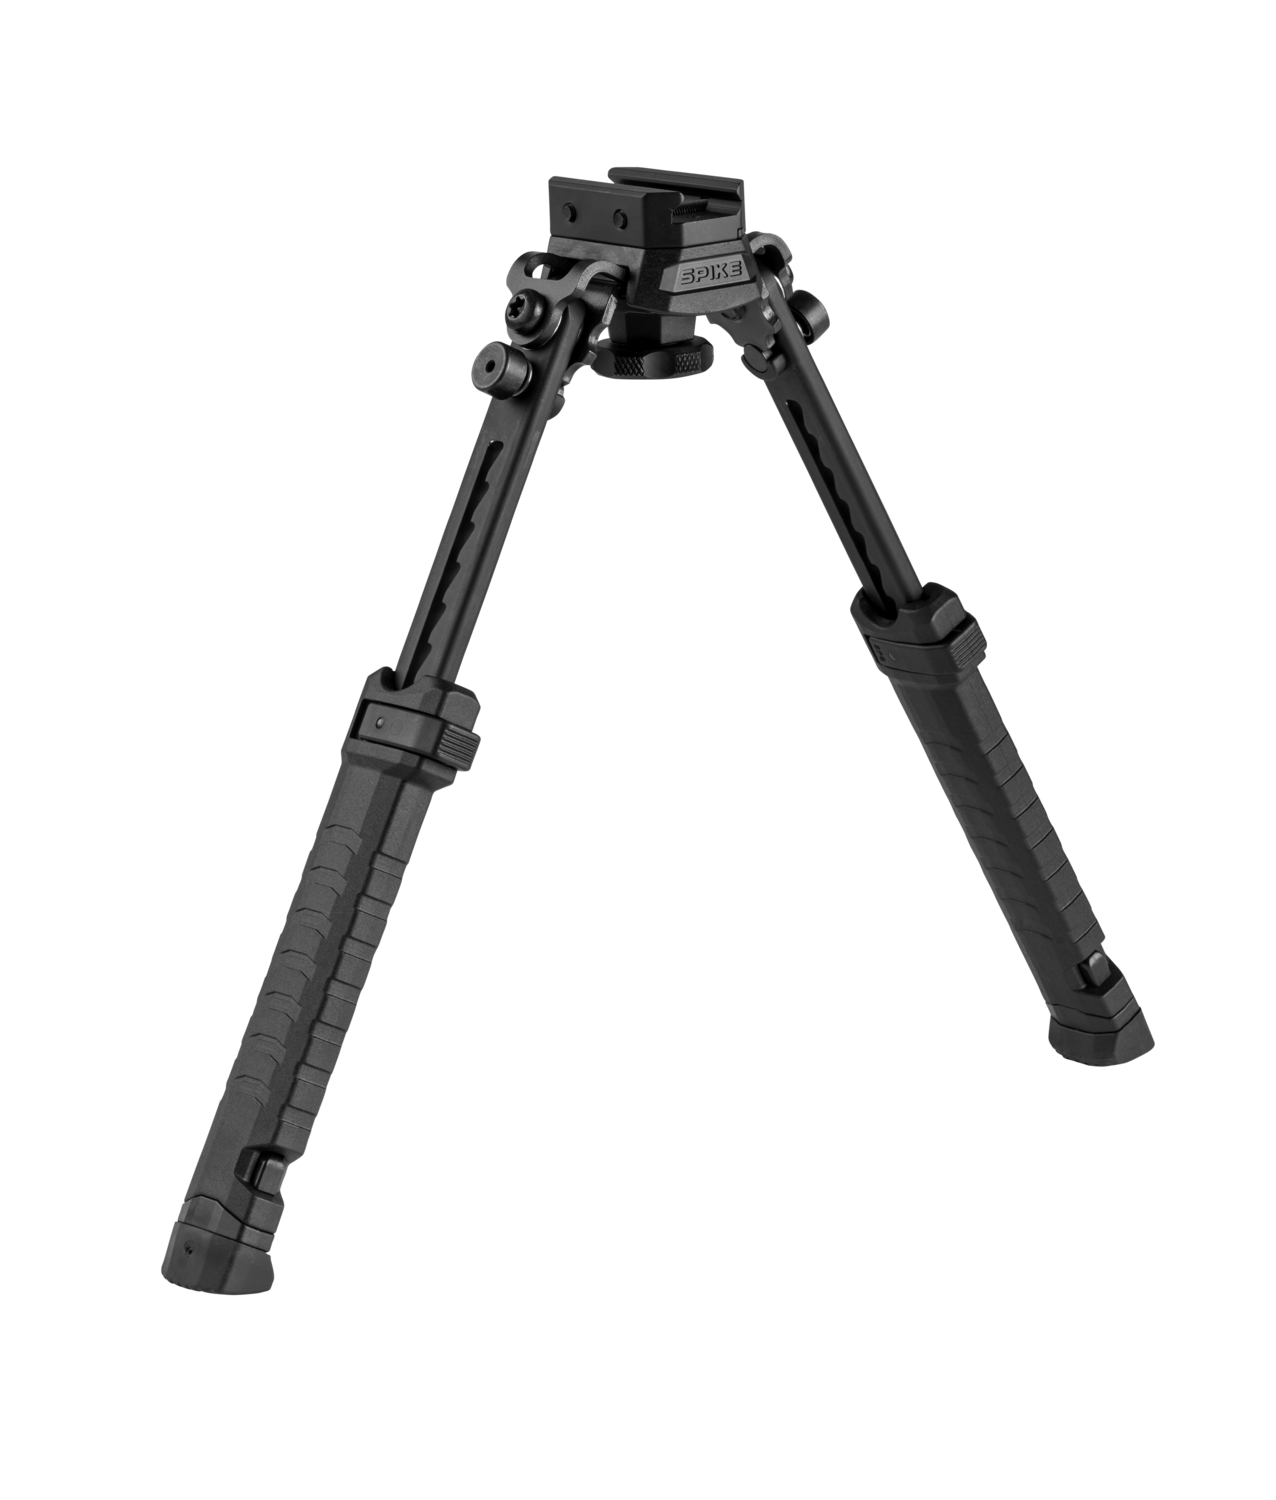 Spike - Precision Bipod